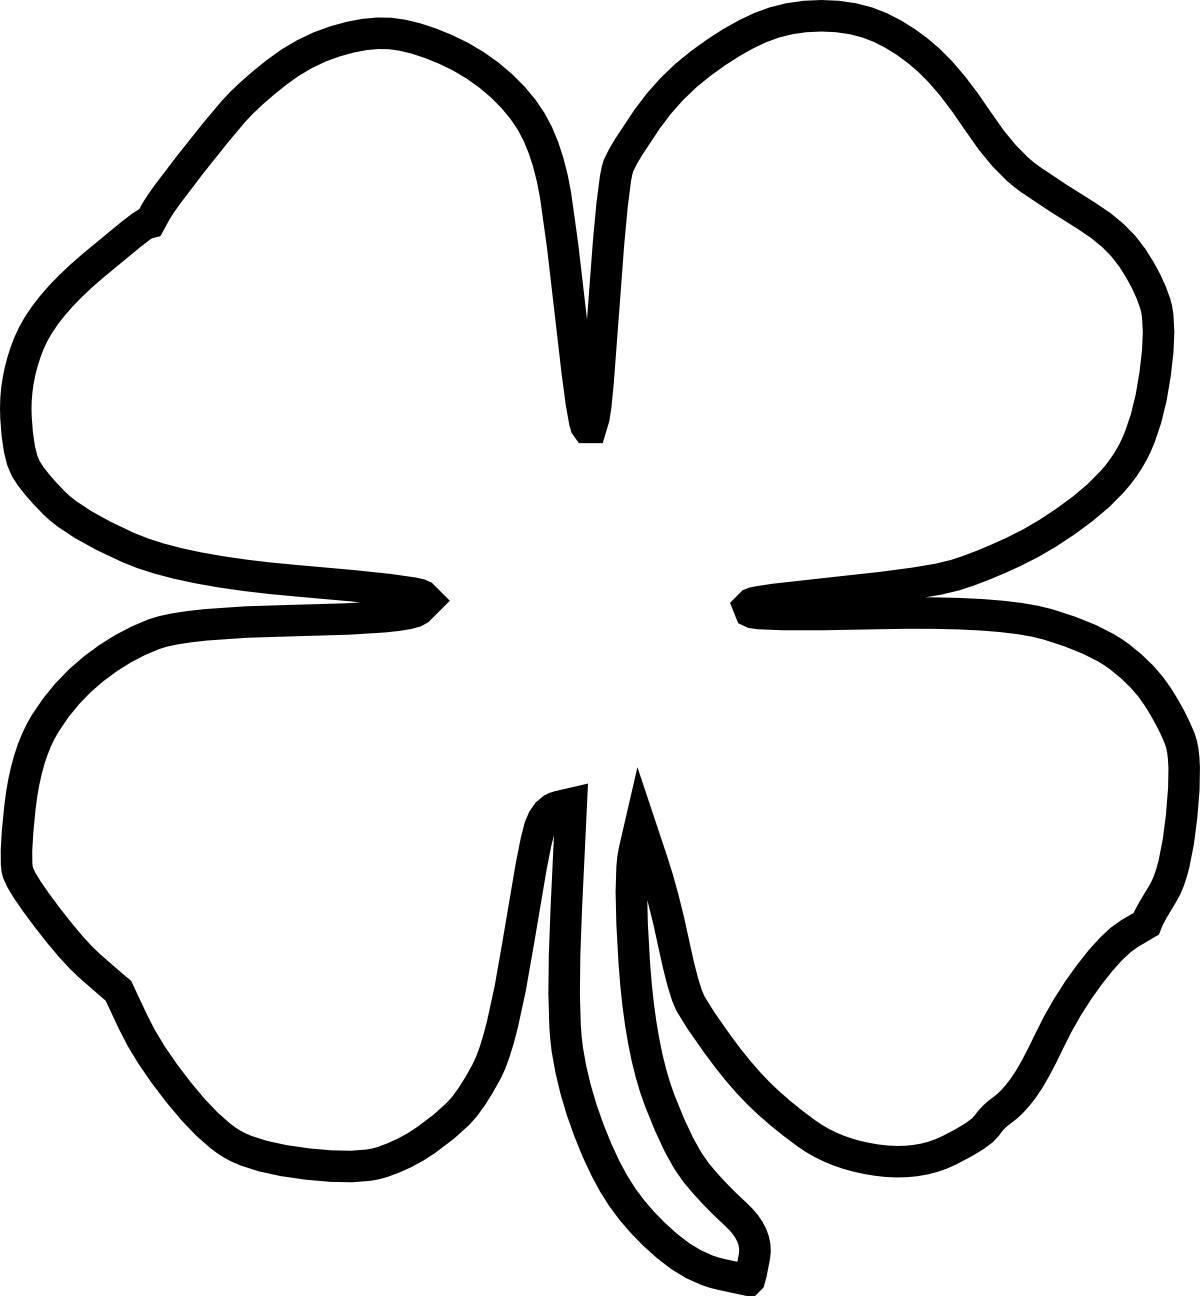 Four Leaf Clover Border Vector: AI and EPS Downloads